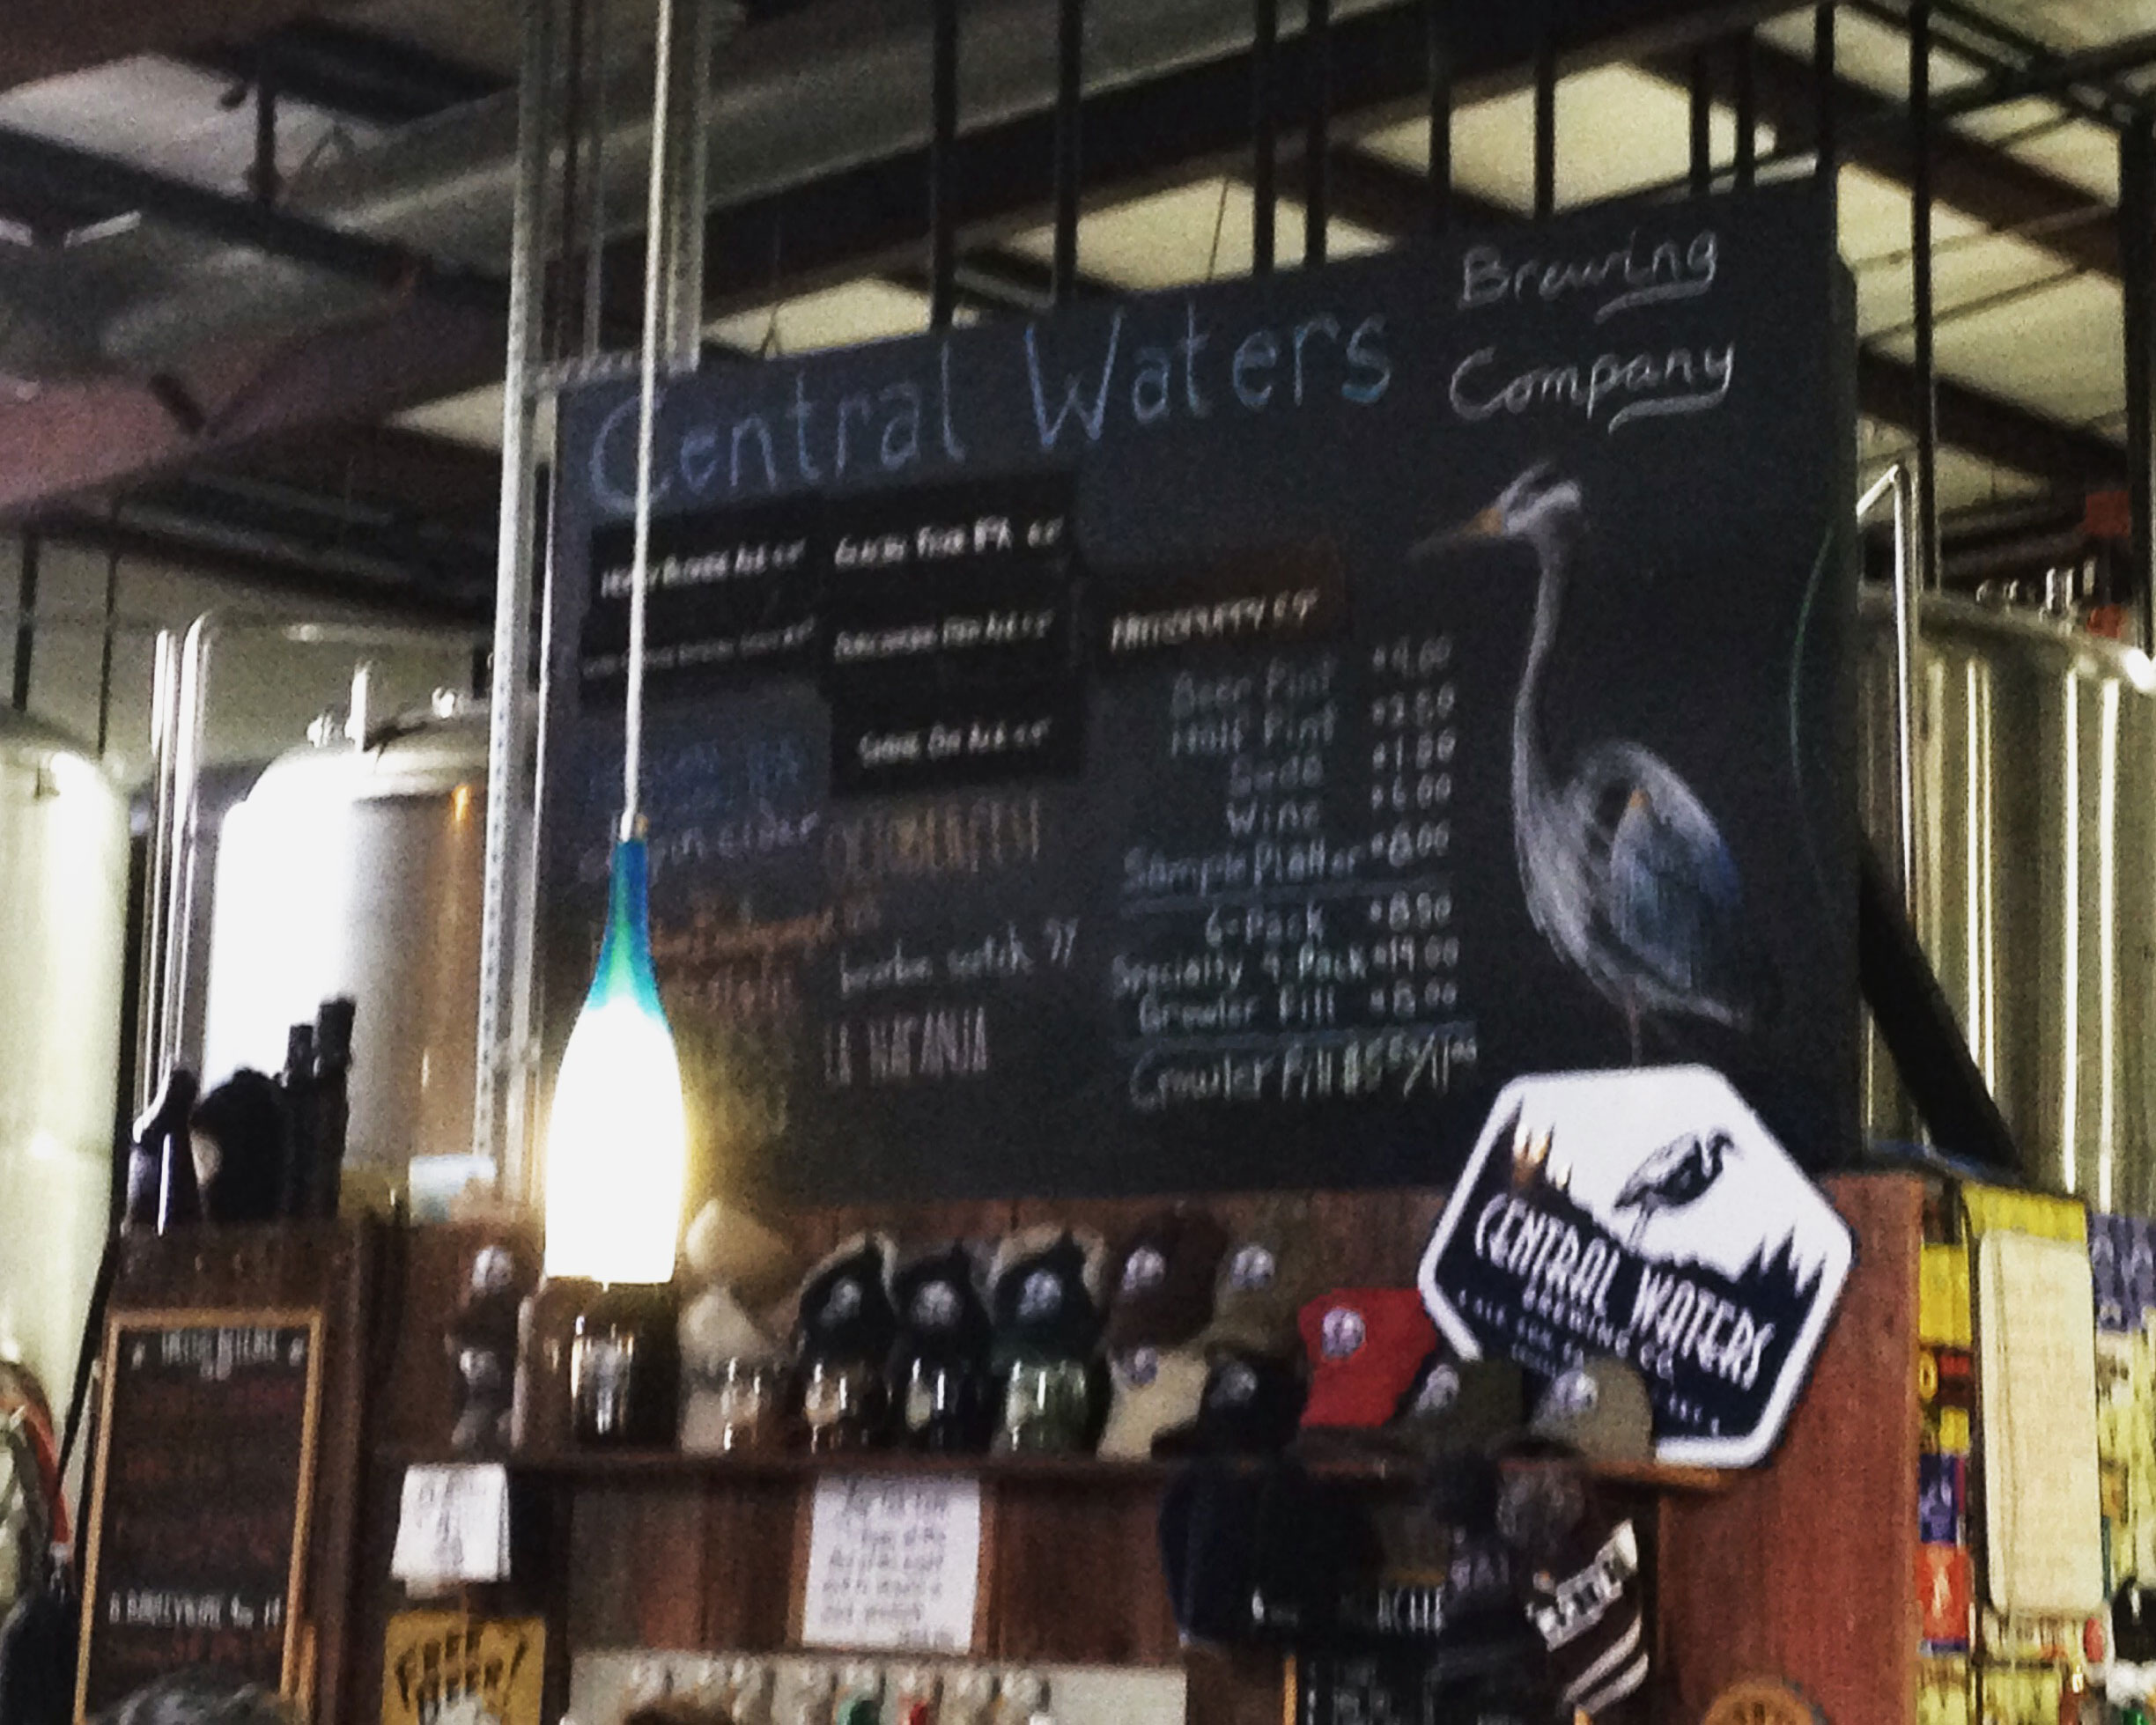 Central Waters Tap Room, Amherst, WI